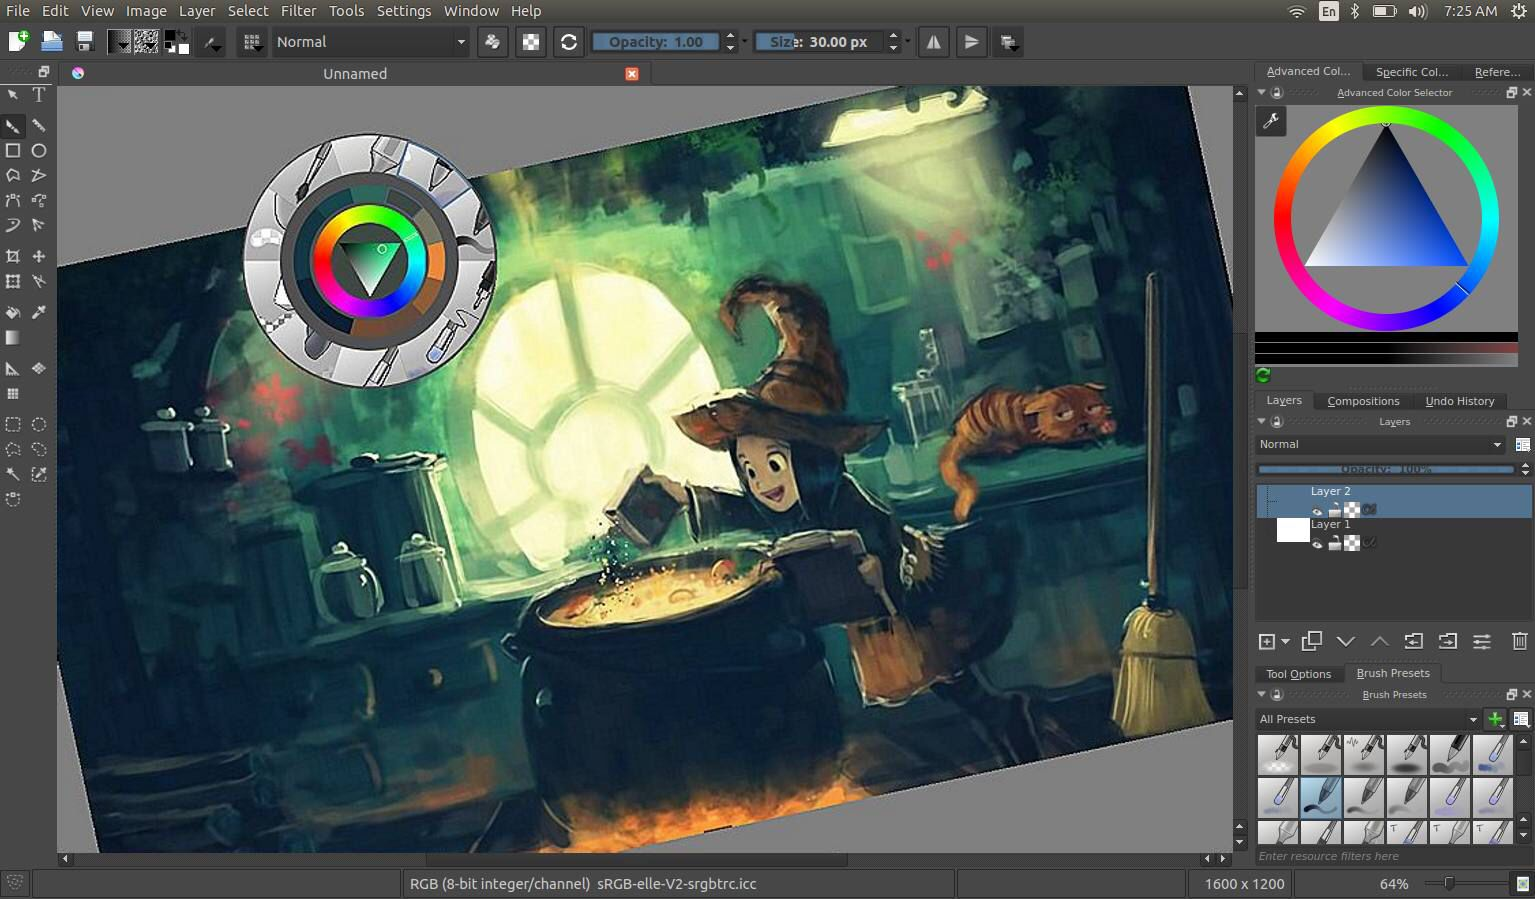 Digital Painting And Illustration Application Similar To Photoshop